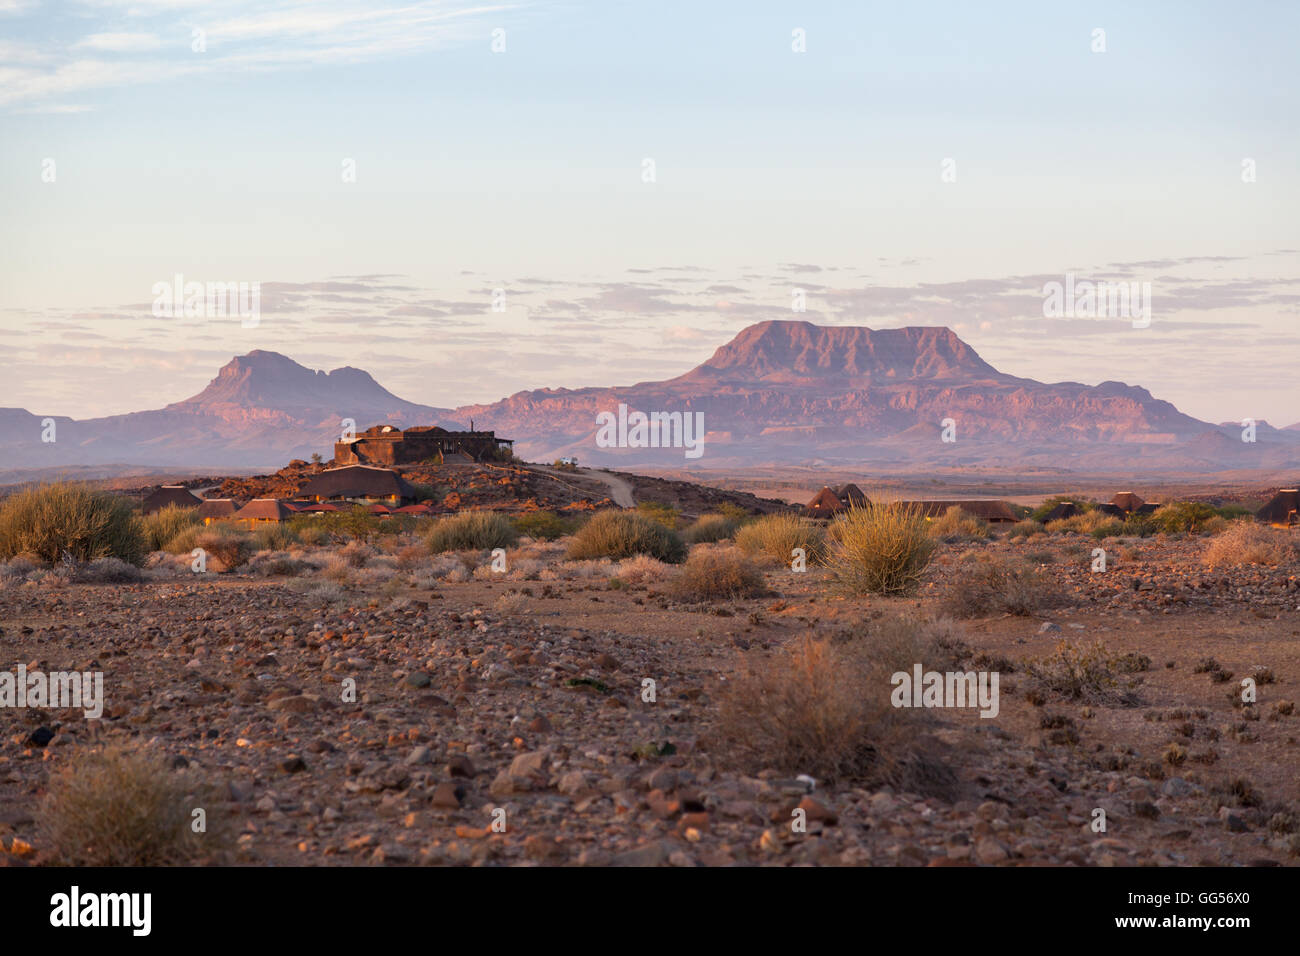 Namibia Dawn at the Doro Nawas camp with views to the nearby beautiful  Mountains - Stock Image